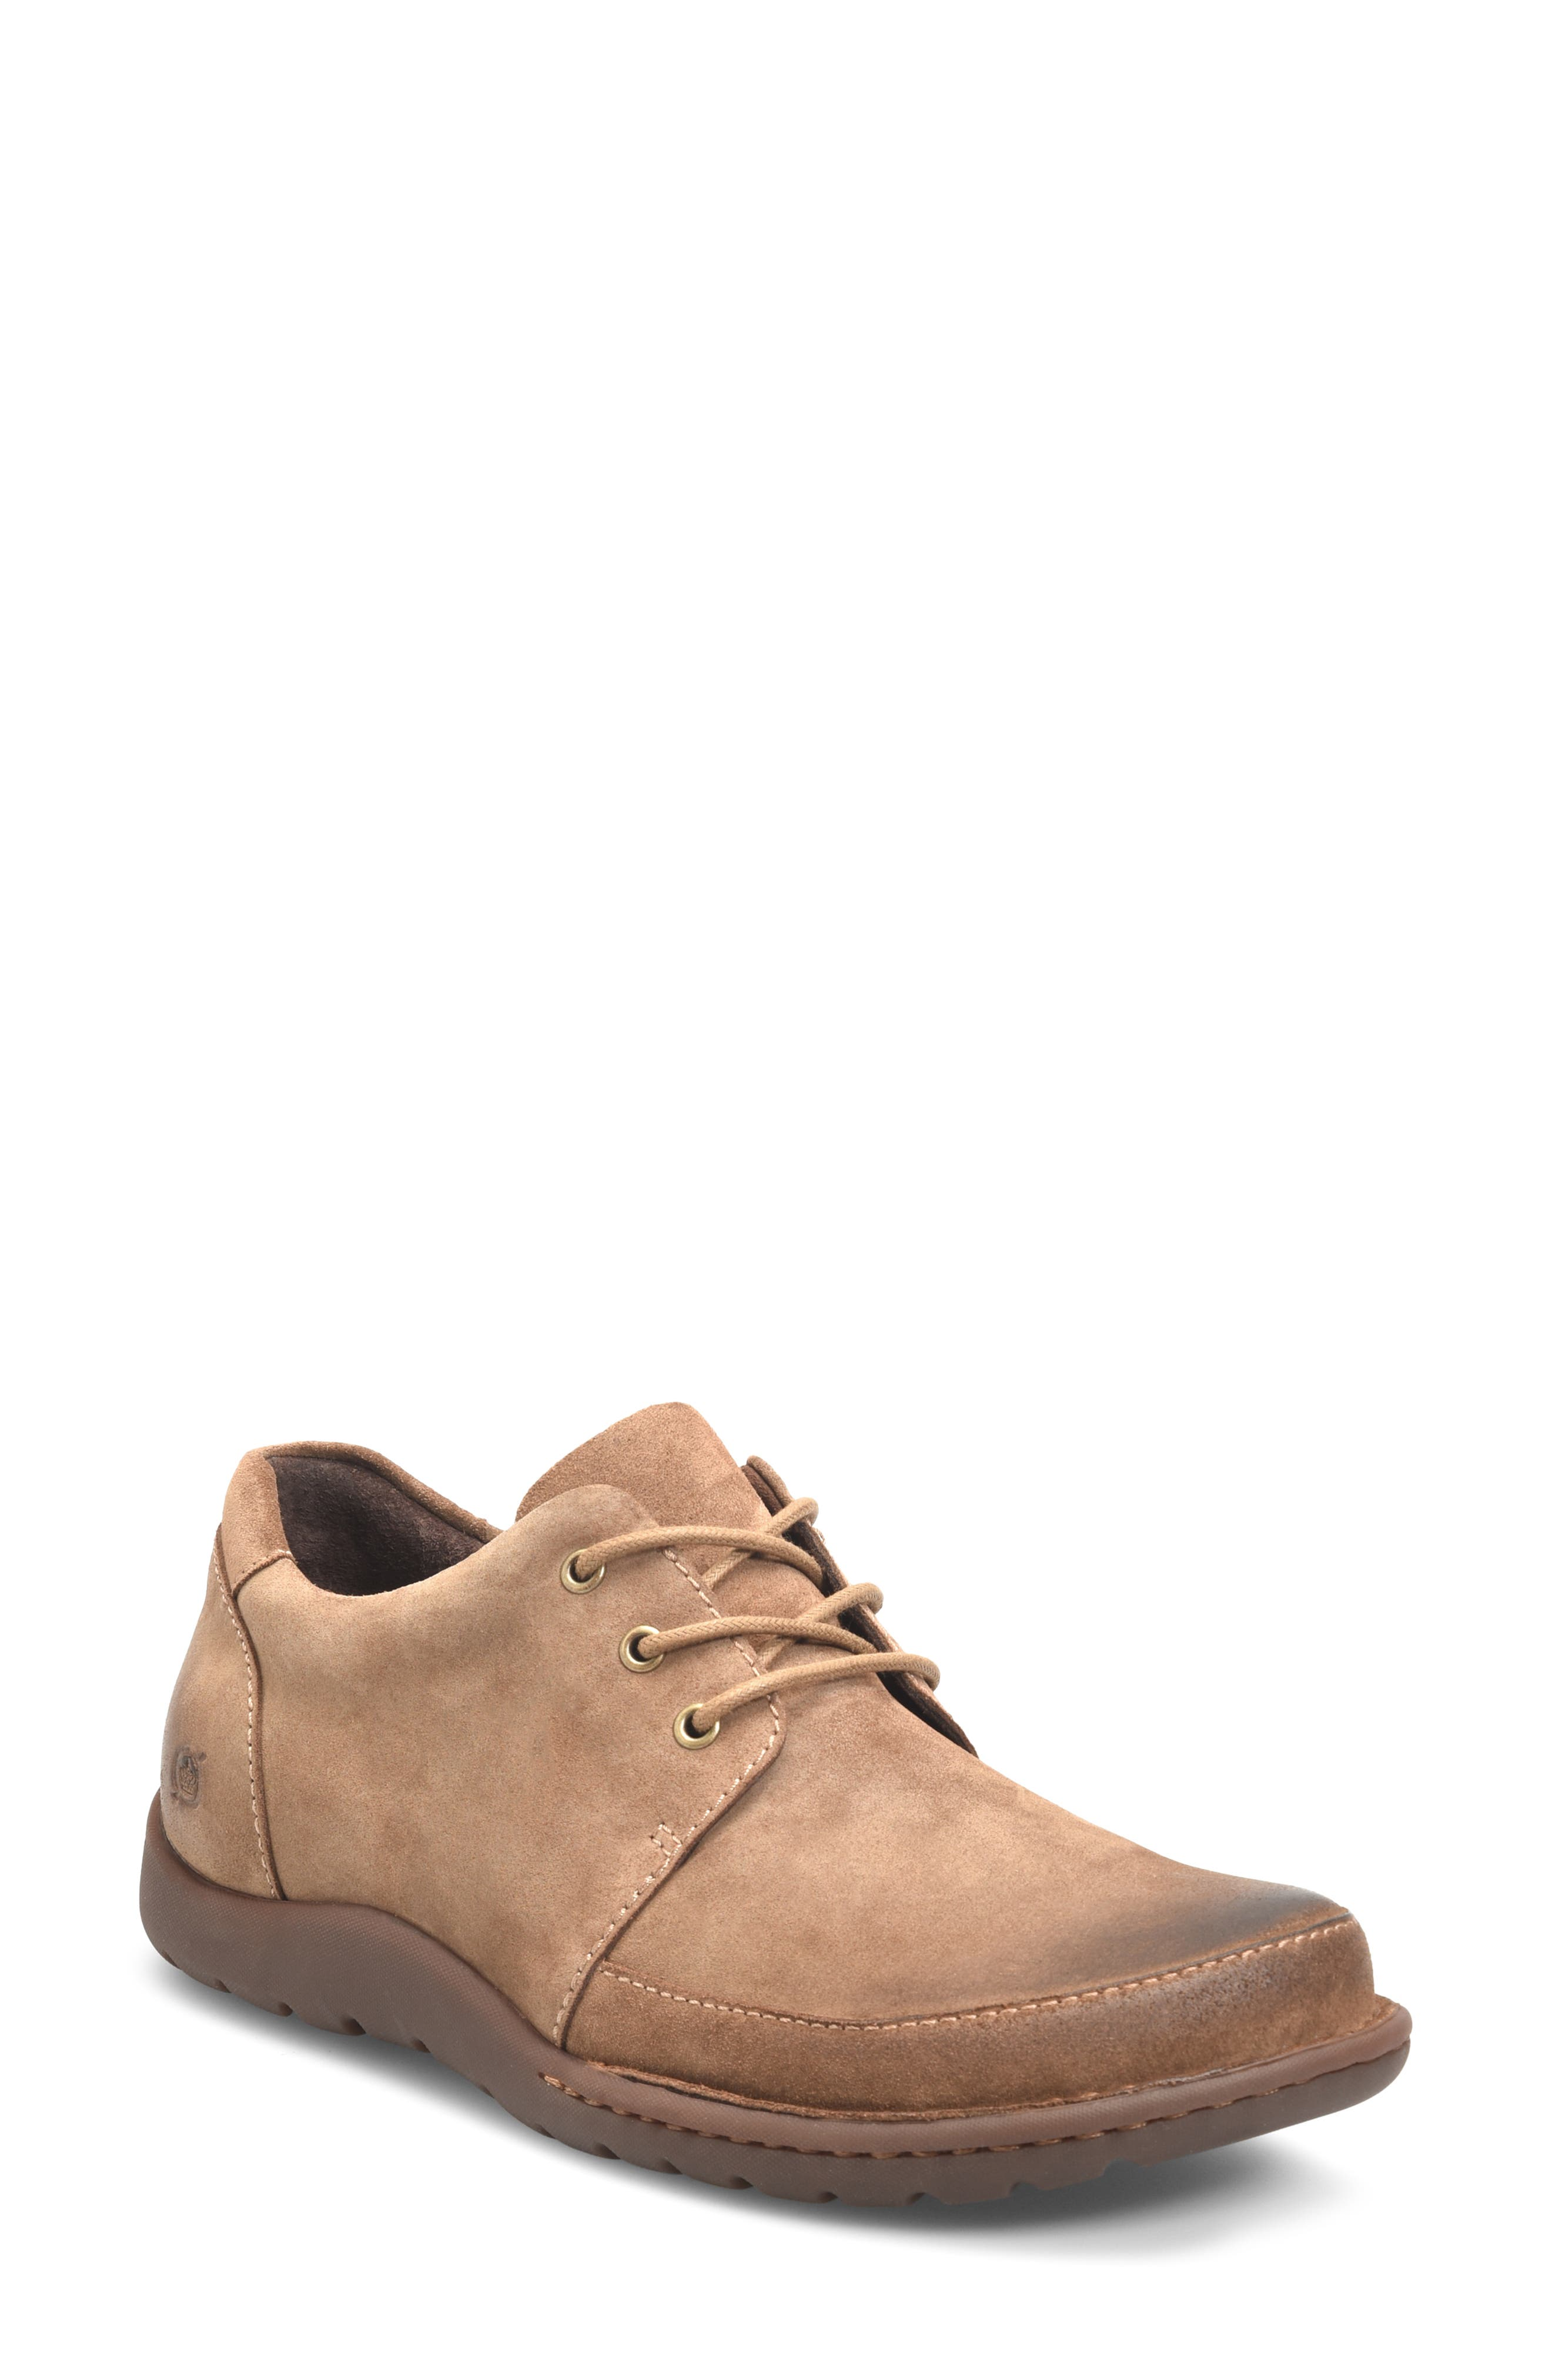 Opanka hand construcioin and a cushioned microfiber footbed ensure superior comfort in a casual derby with versatile appeal. Style Name:B?rn Nigel Moc Toe Derby (Men). Style Number: 6118750. Available in stores.